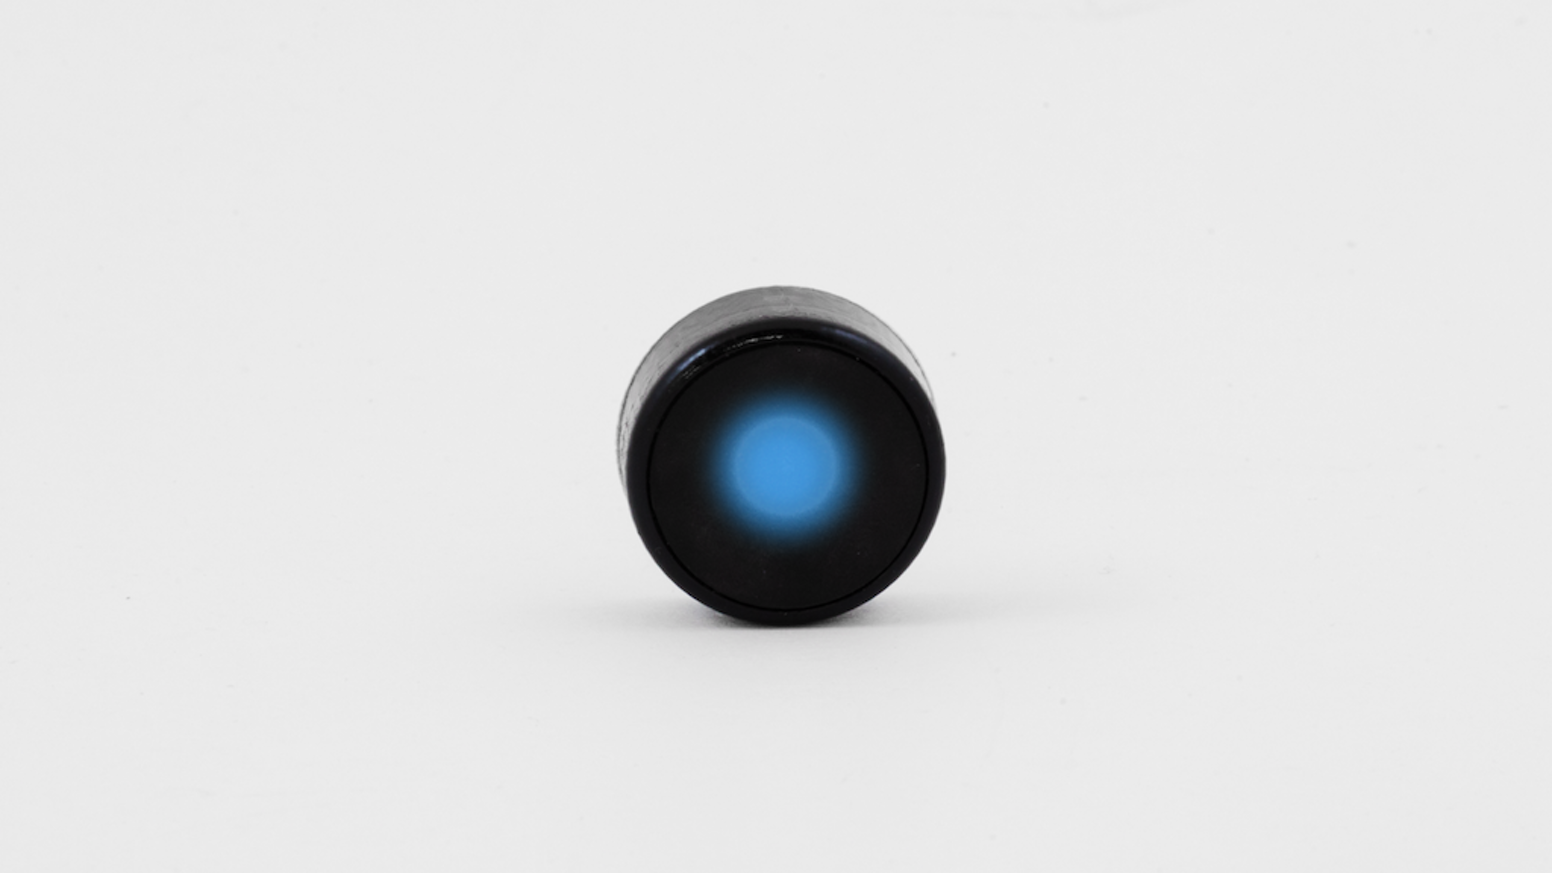 Dot uses precise location tracking to make your smartphone's notifications highly contextual.